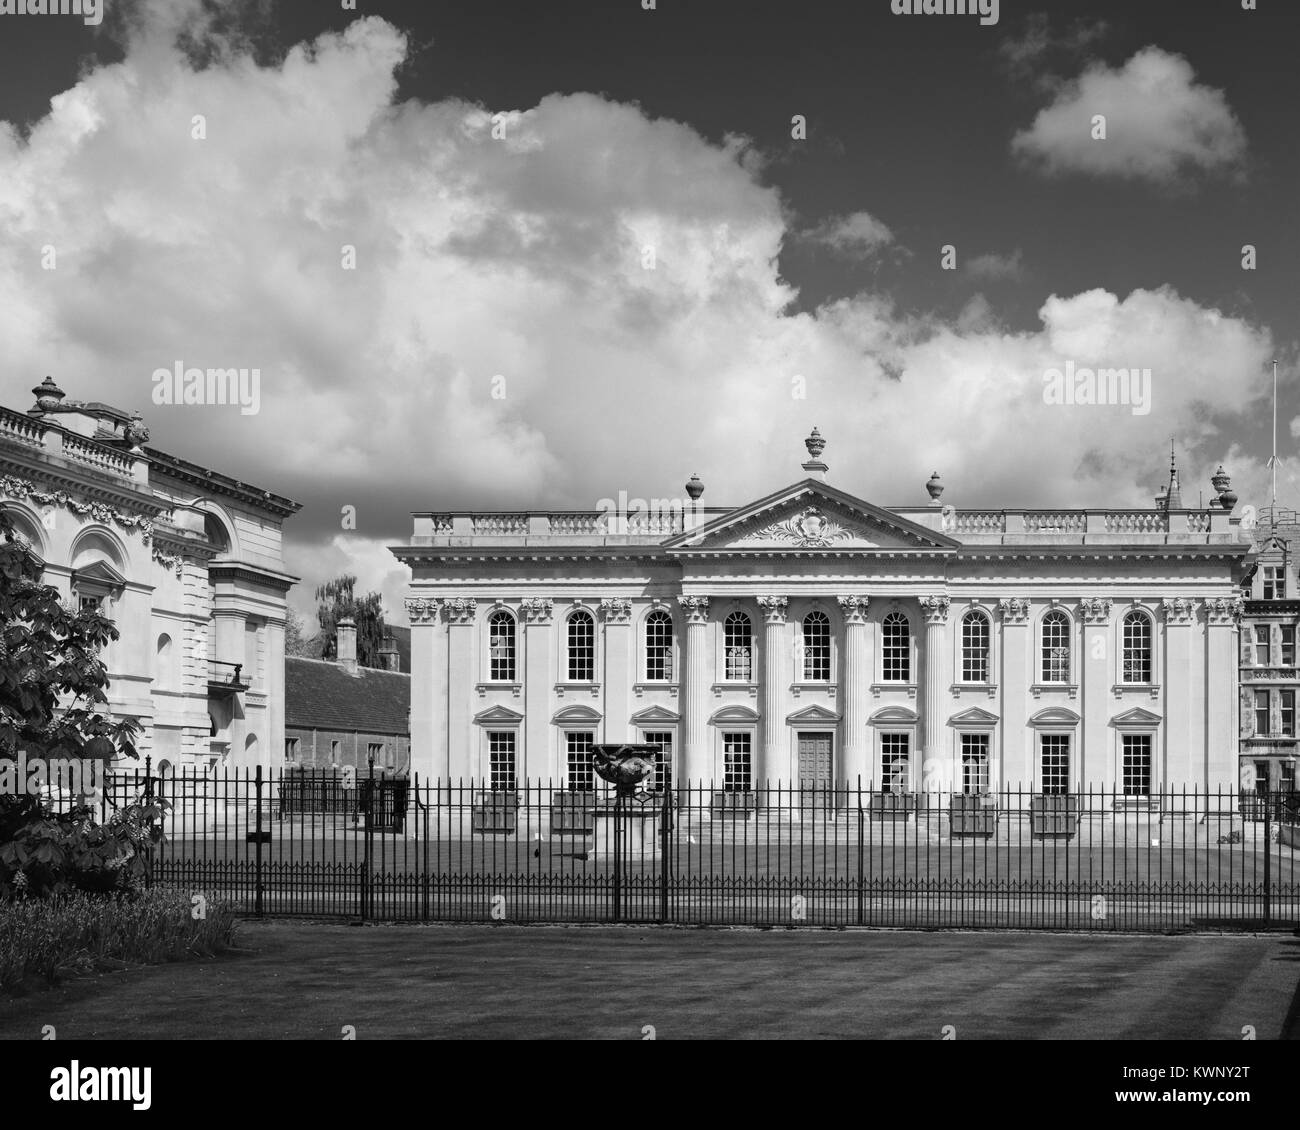 Cambridge University Senate House and Old Schools on King's Parade - Stock Image